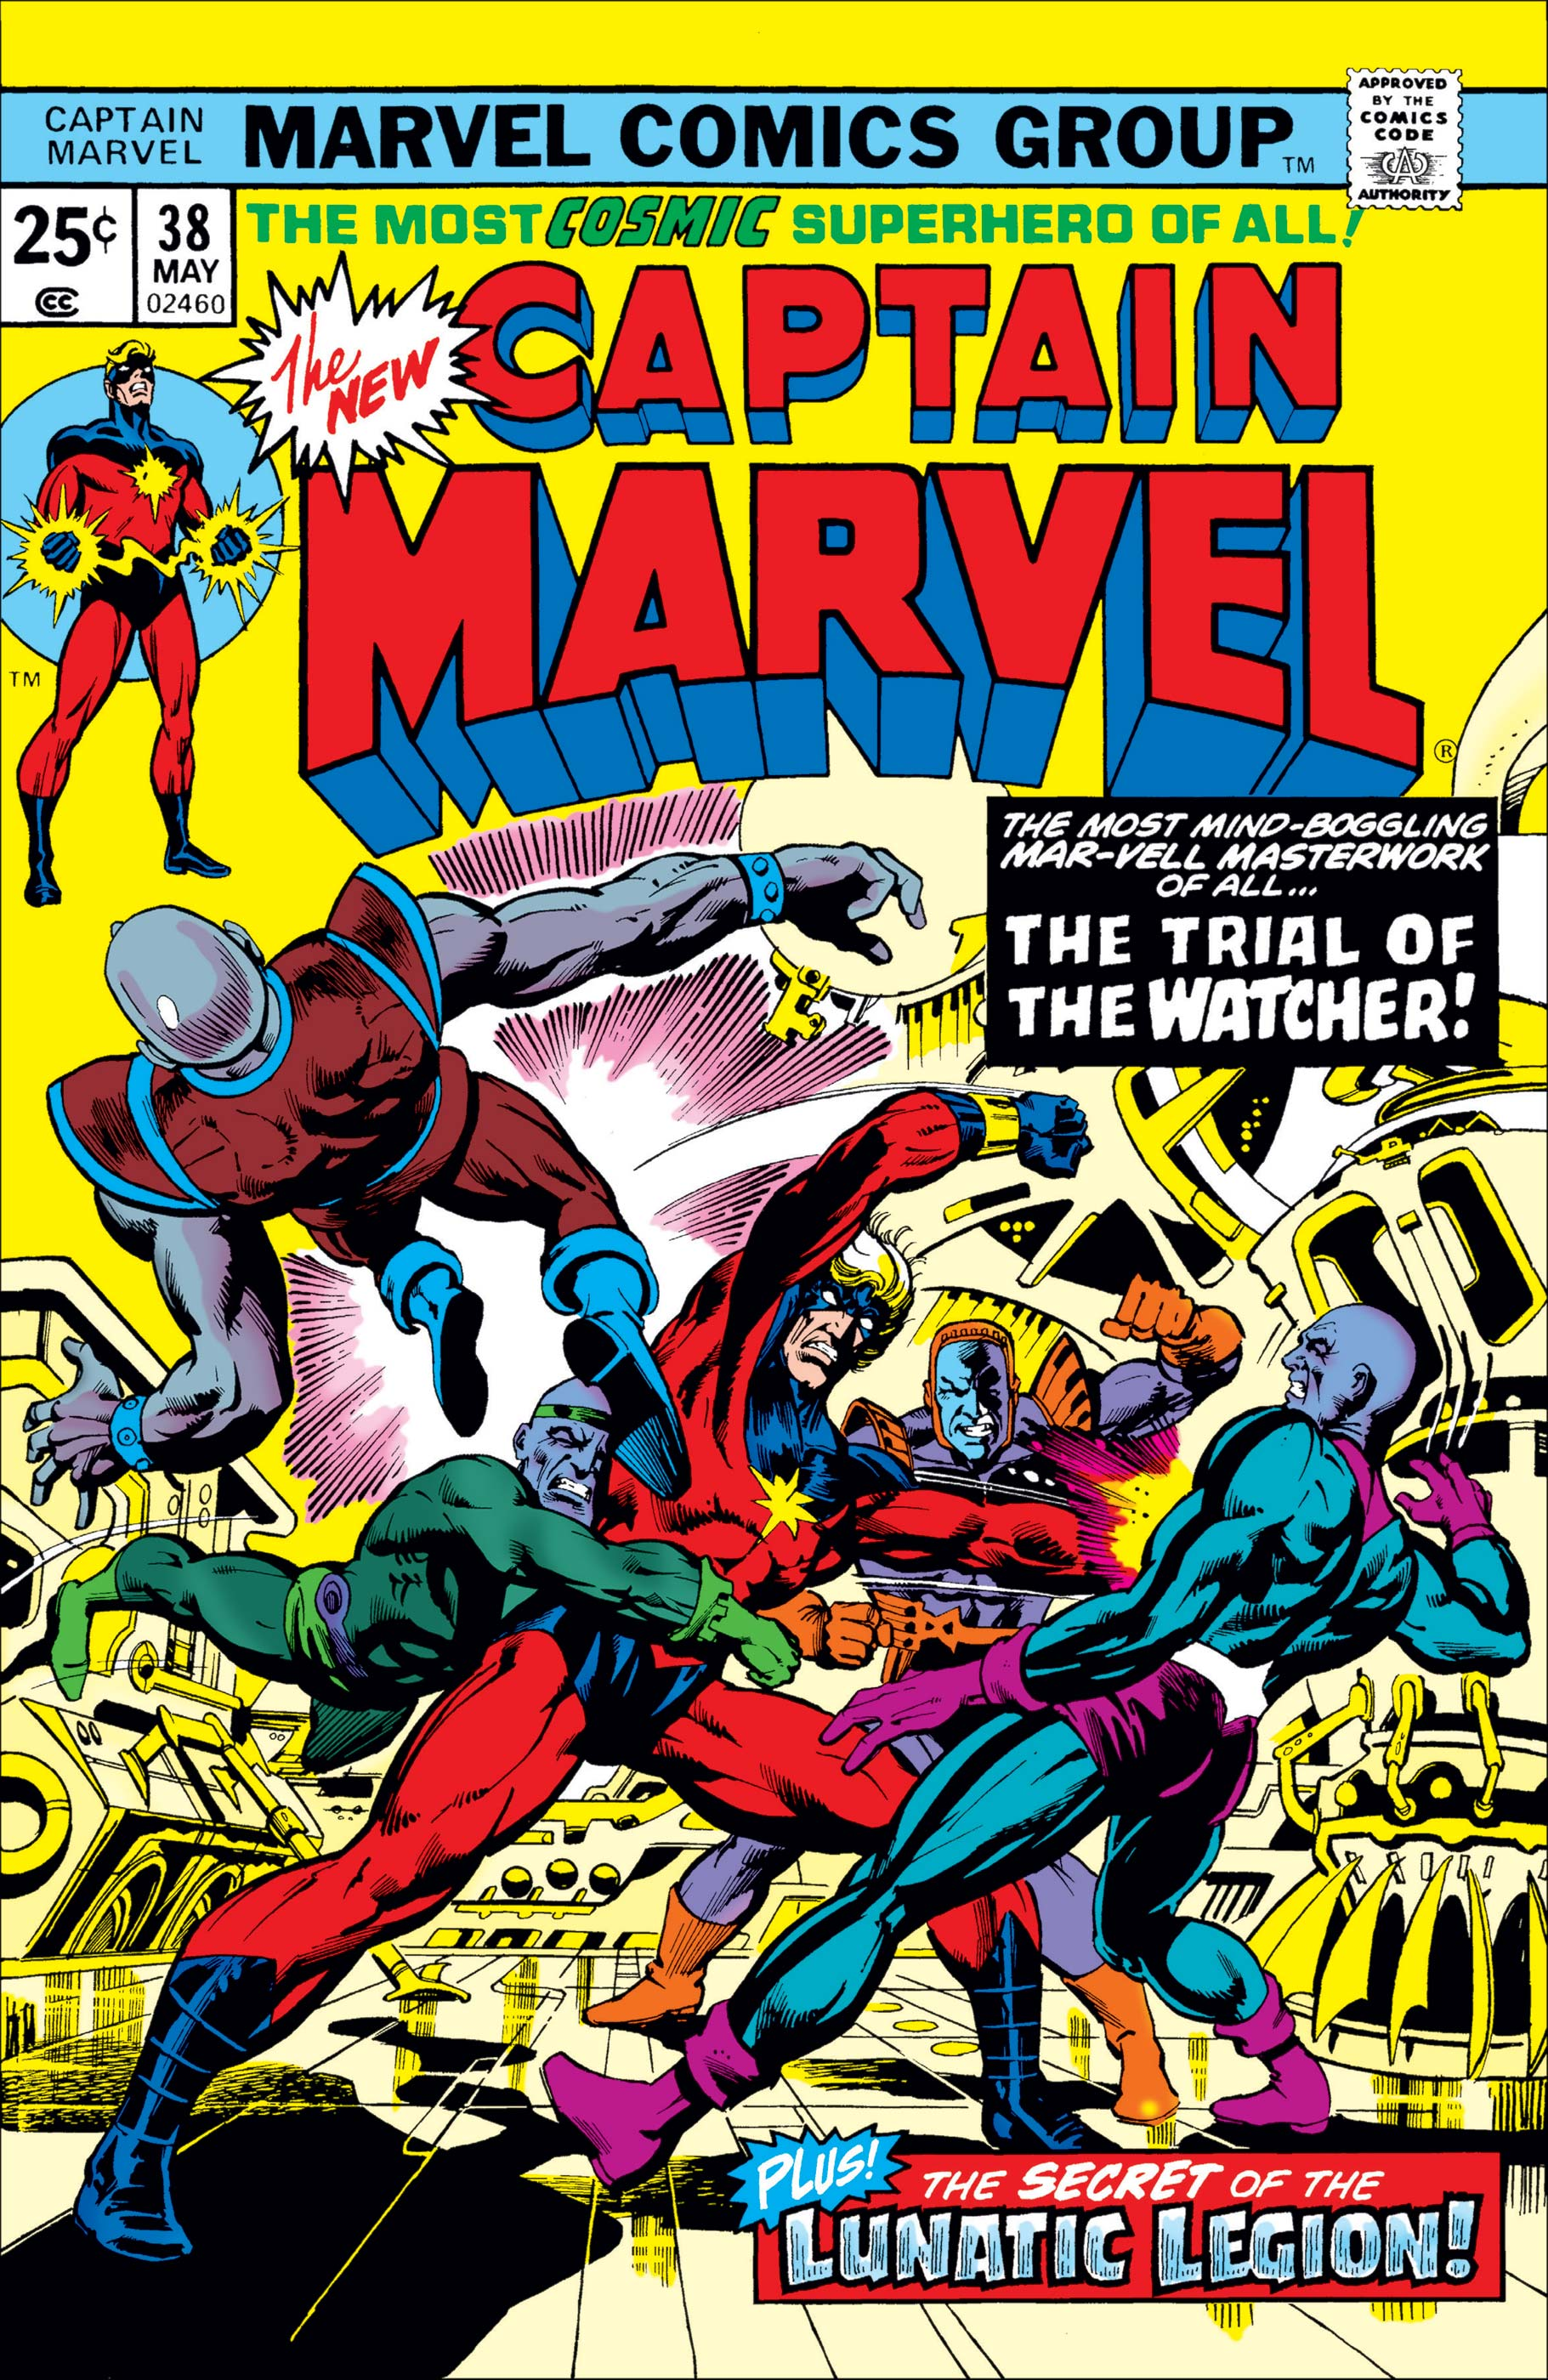 Captain Marvel (1968) #38